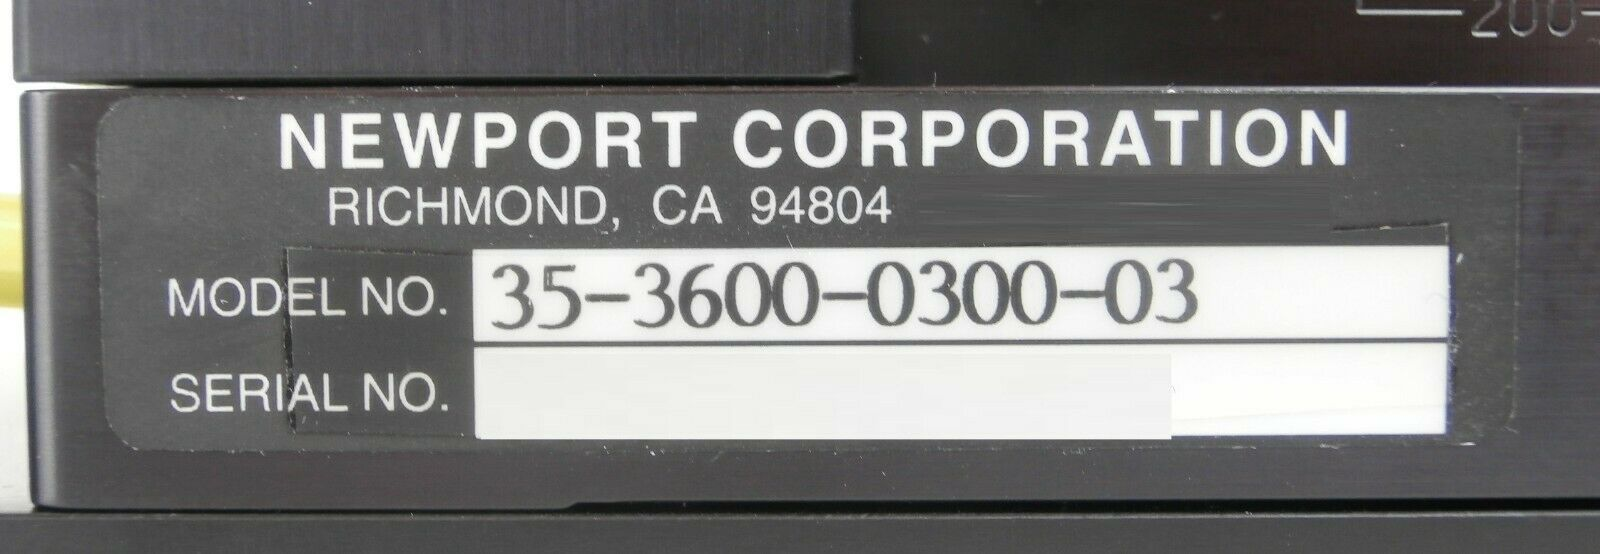 Newport 35-3600-0300-03 300mm Wafer Prealigner AMAT Endura PVD Working Spare